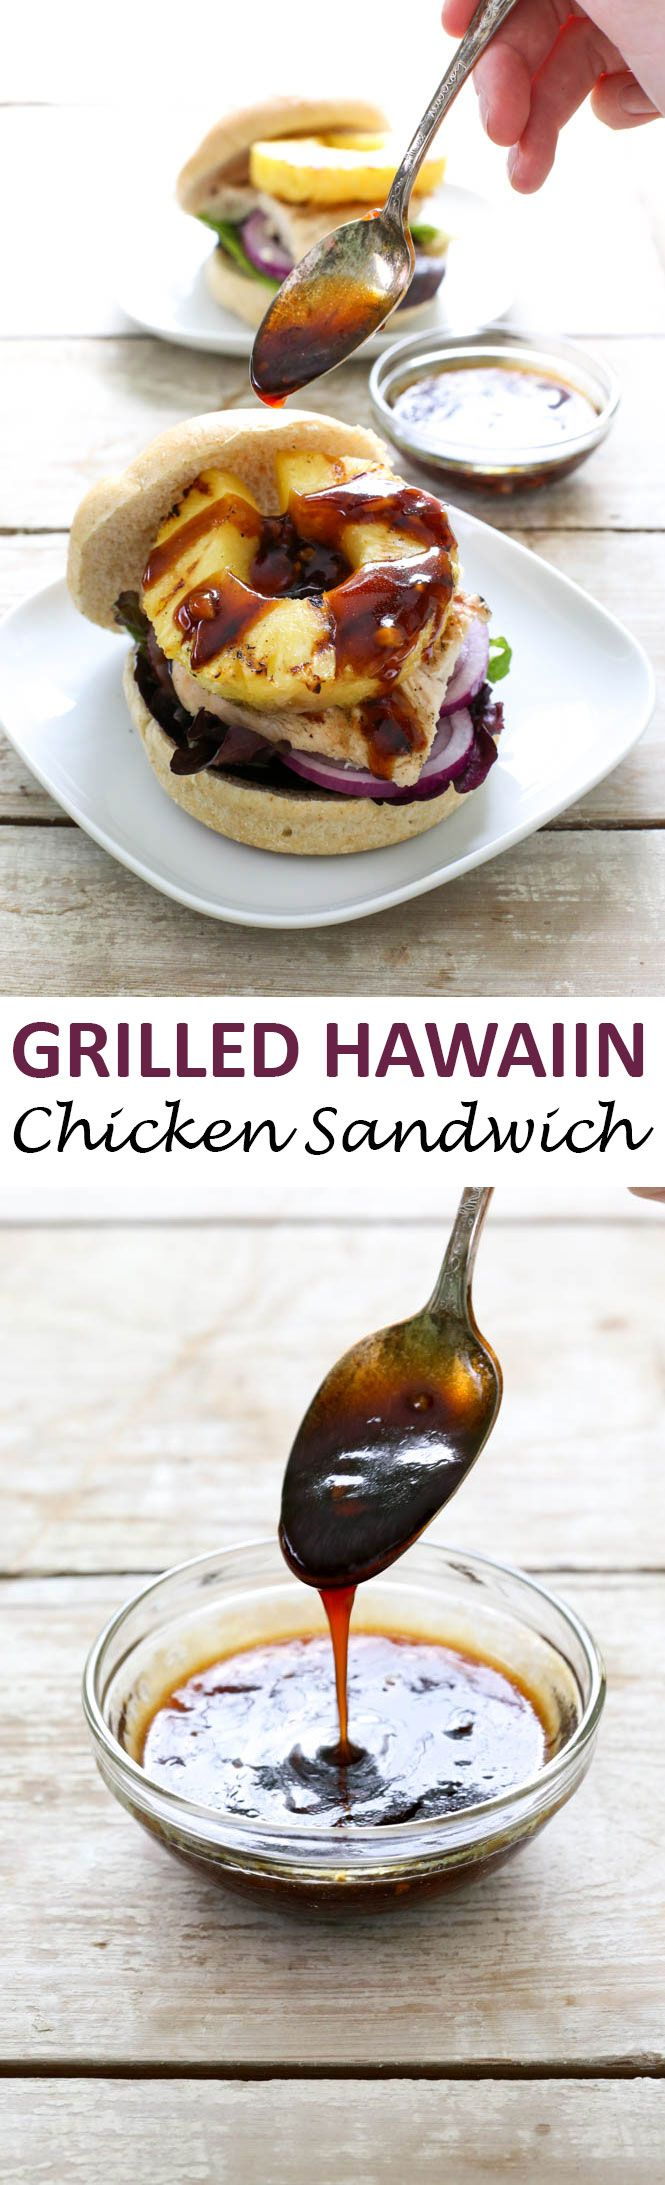 Do lettuce wrap Grilled Hawaiian Chicken Sandwich